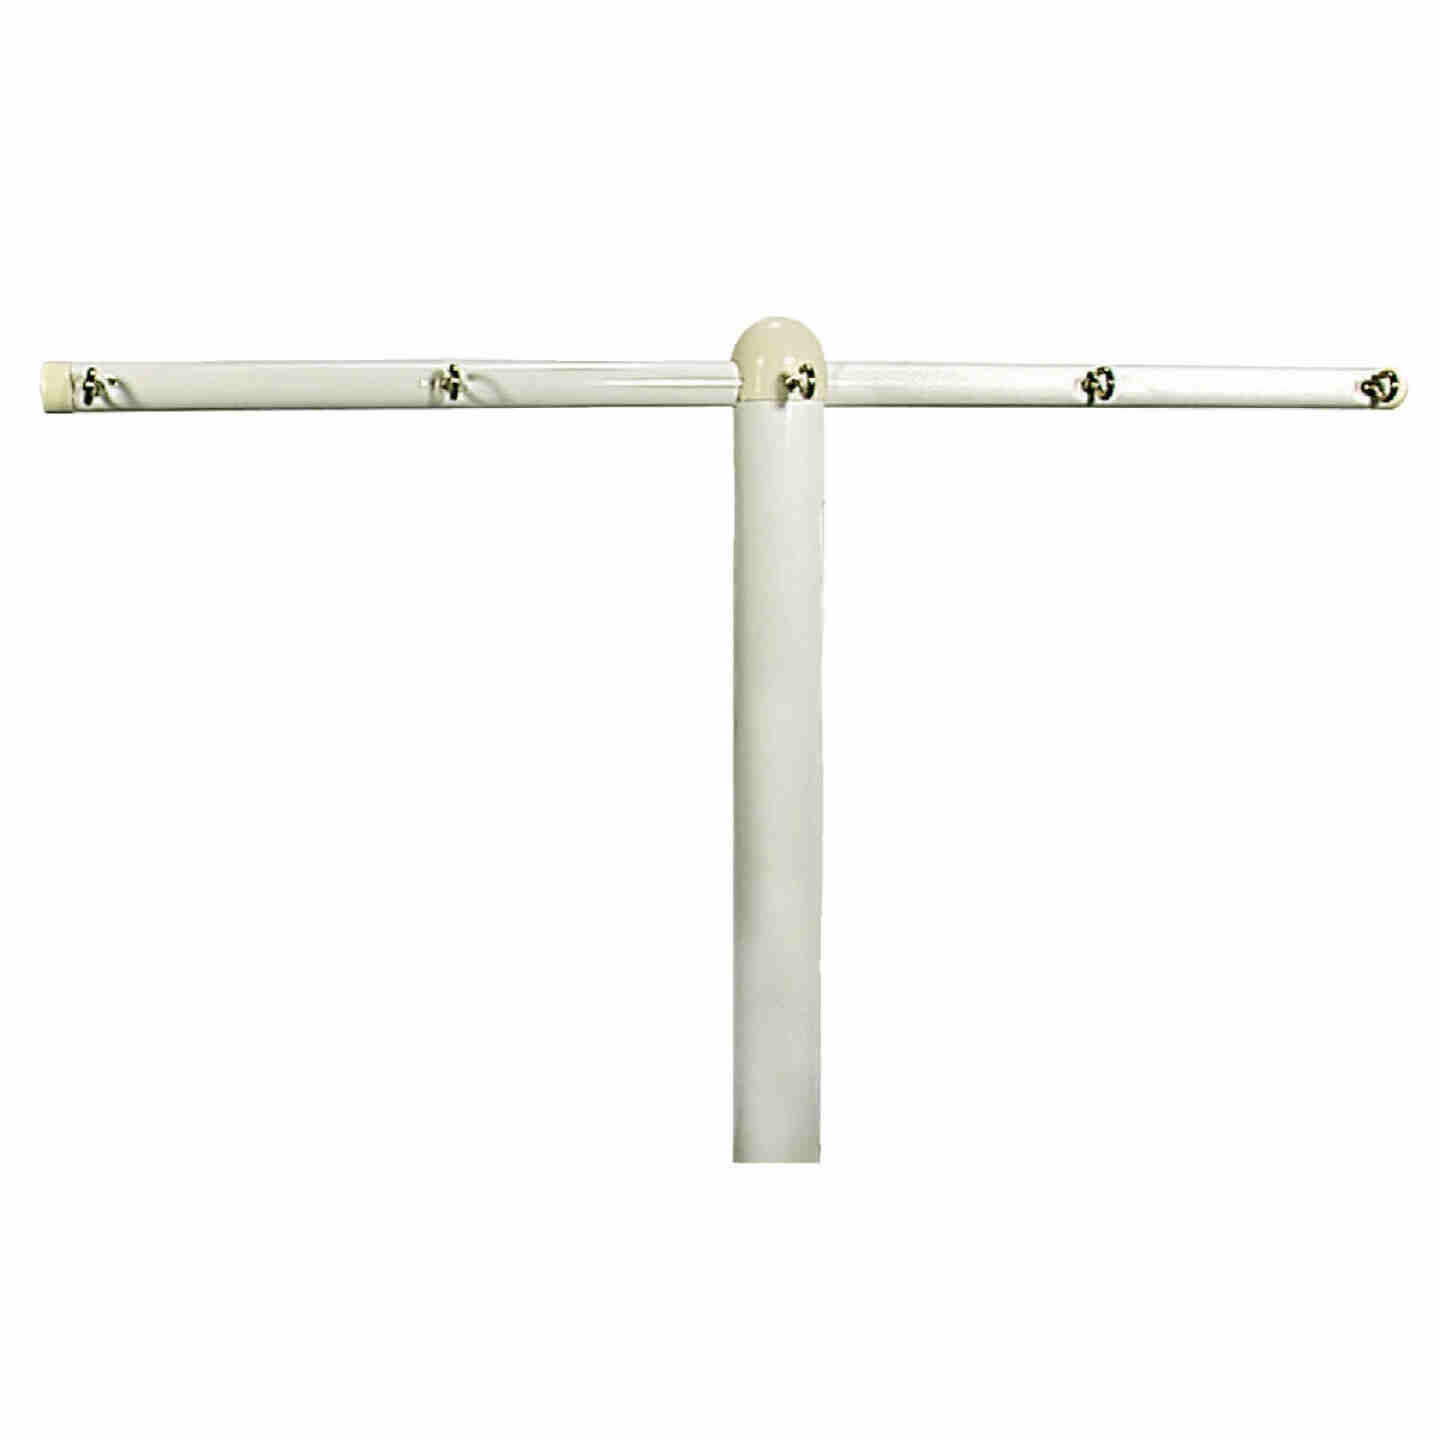 Household Essentials Sunline 6 Ft. 3 In. Steel Clothesline Post Image 1